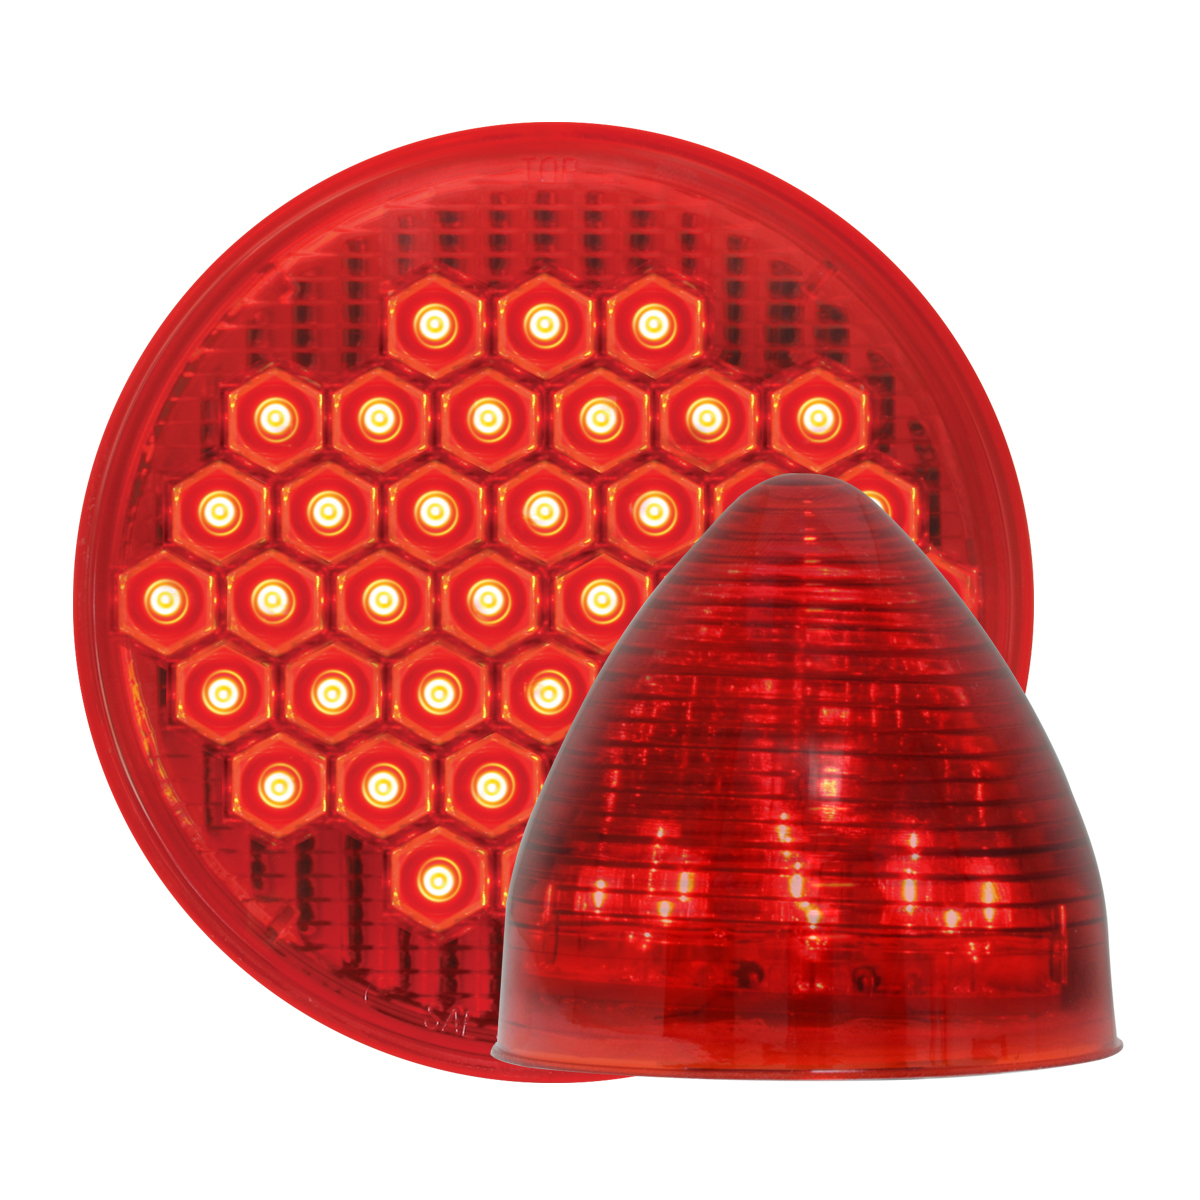 #87700/#79271 High Count LED Red/Red - Beehive